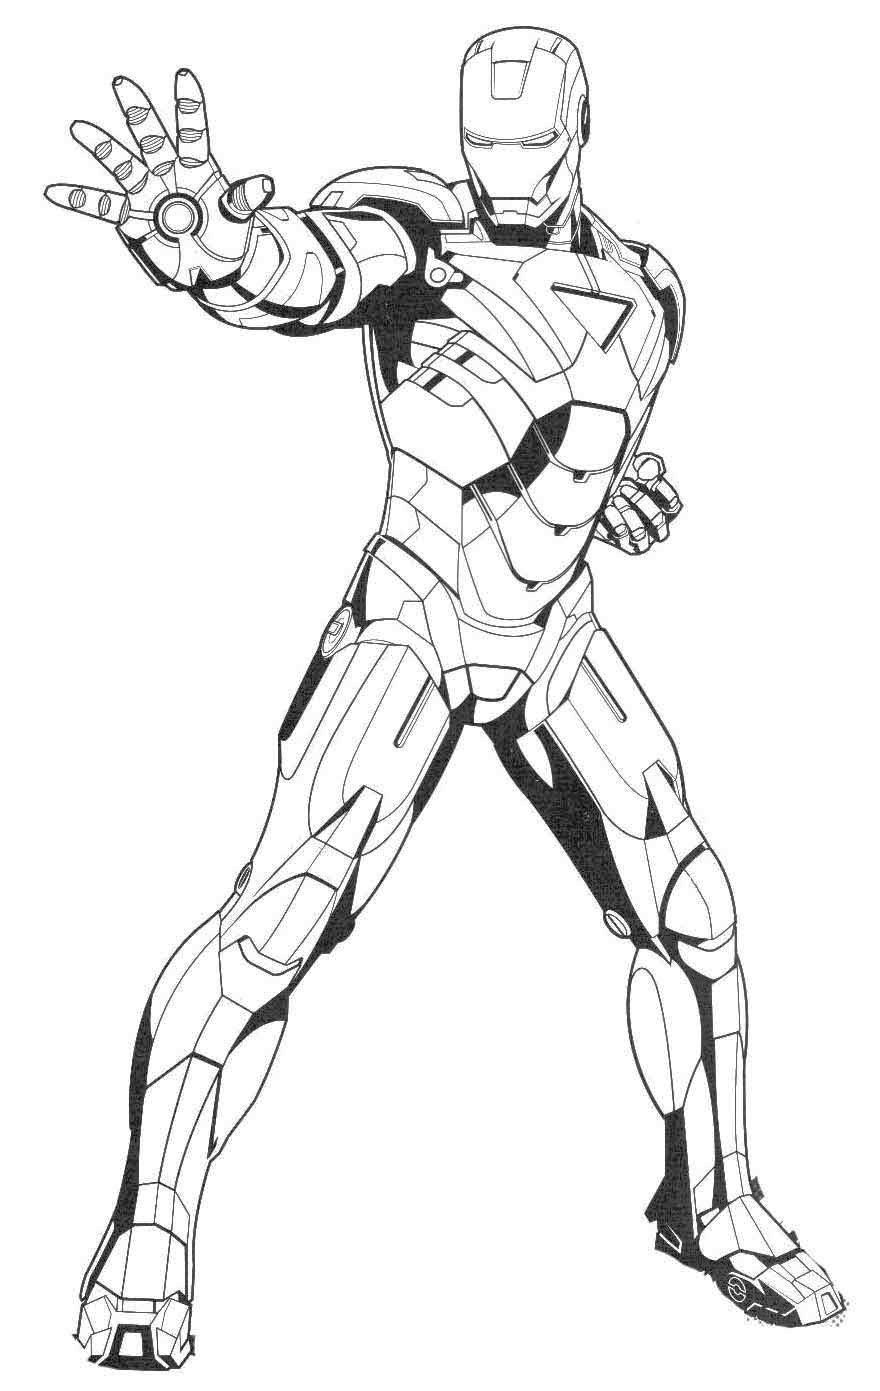 Iron Man Ready Ultimate Weapon Coloring Page | bordados | Pinterest